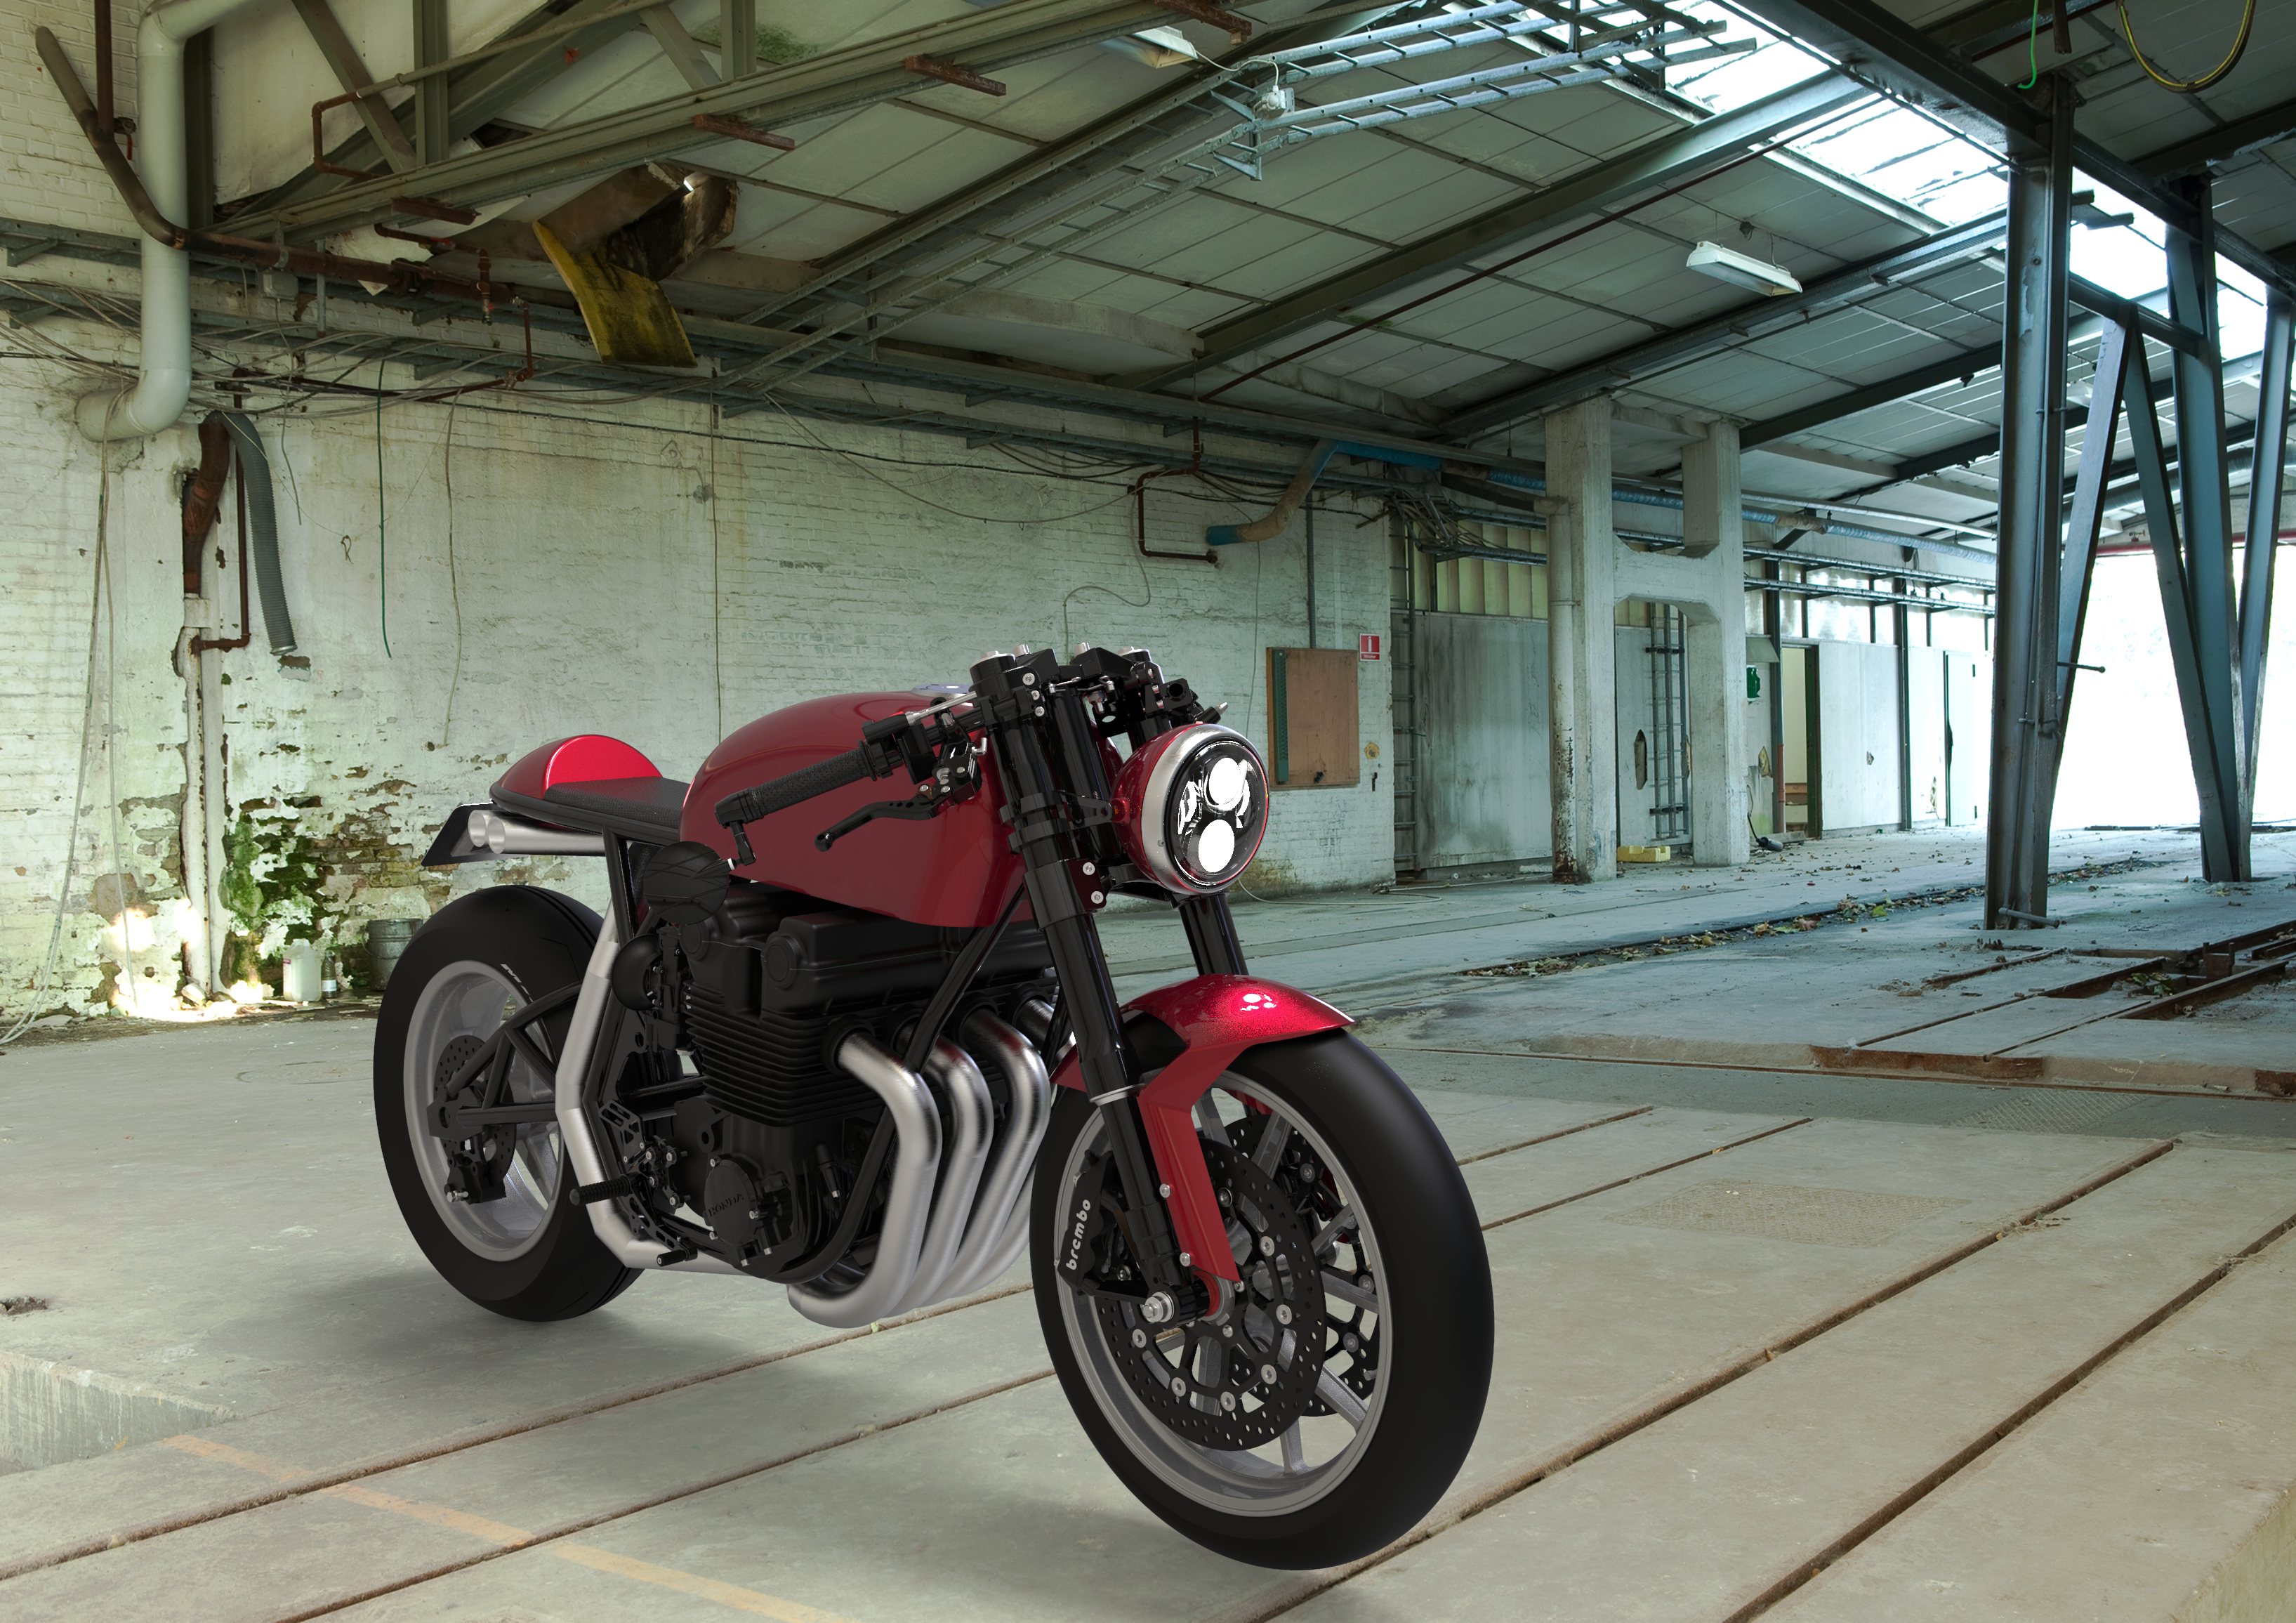 Honda CB750 Cafe Racer, front TQ view